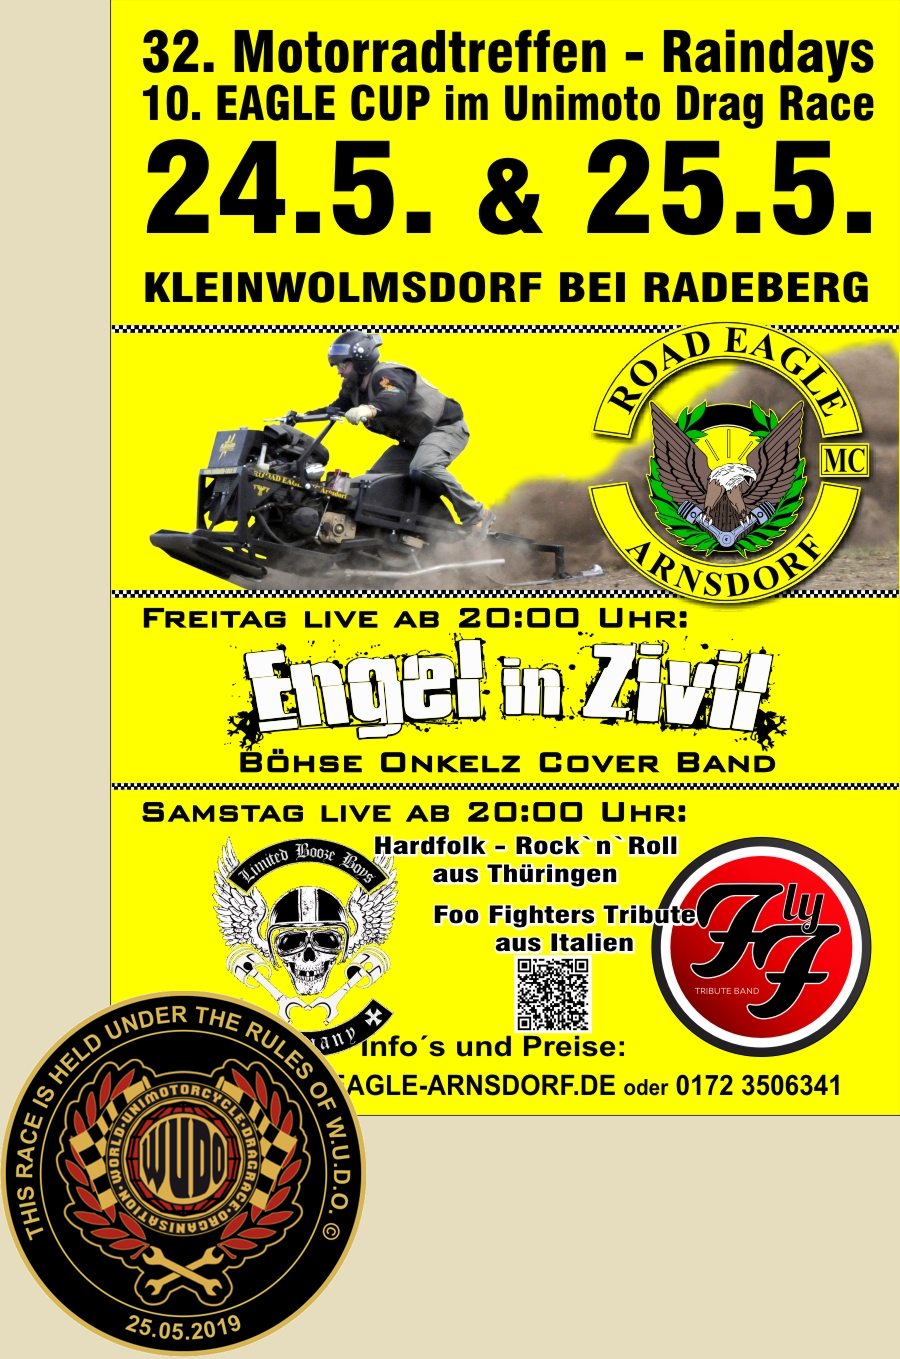 10. EAGLE CUP im Unimotorcycle Drag Race beim ROAD EAGLE MC Arnsdorf 2019